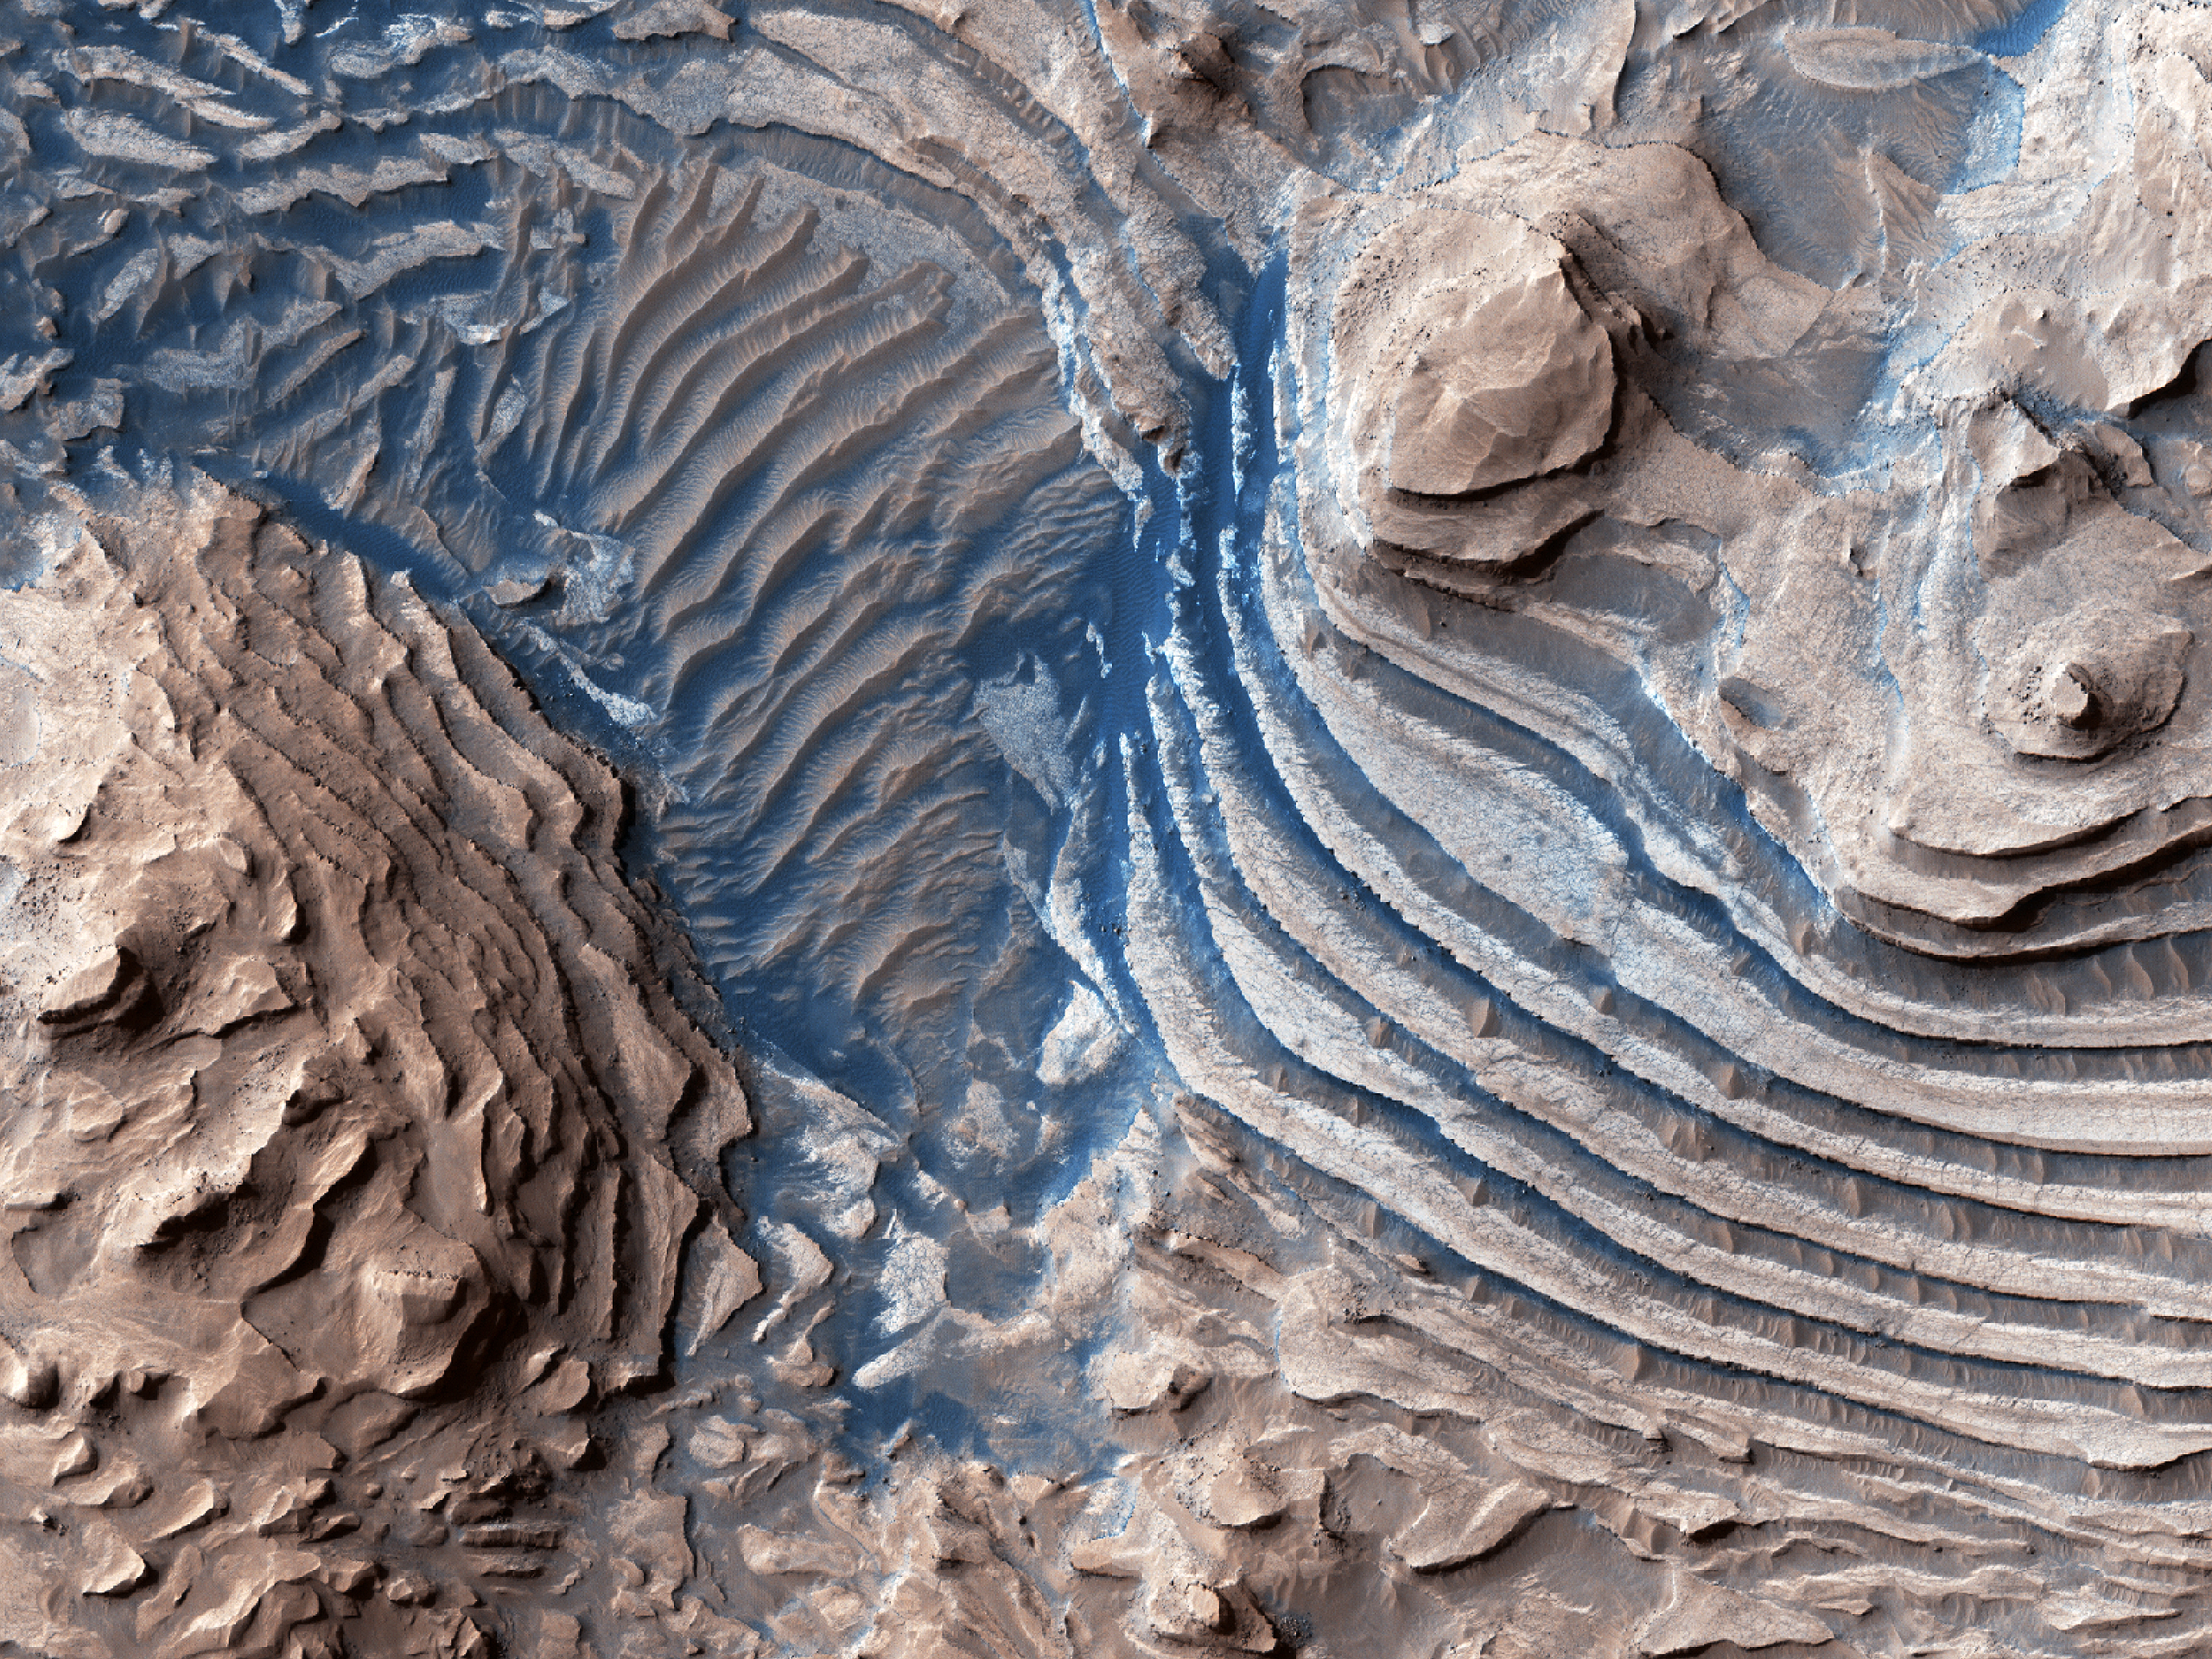 Stair-Stepped Mounds in Meridiani Planum